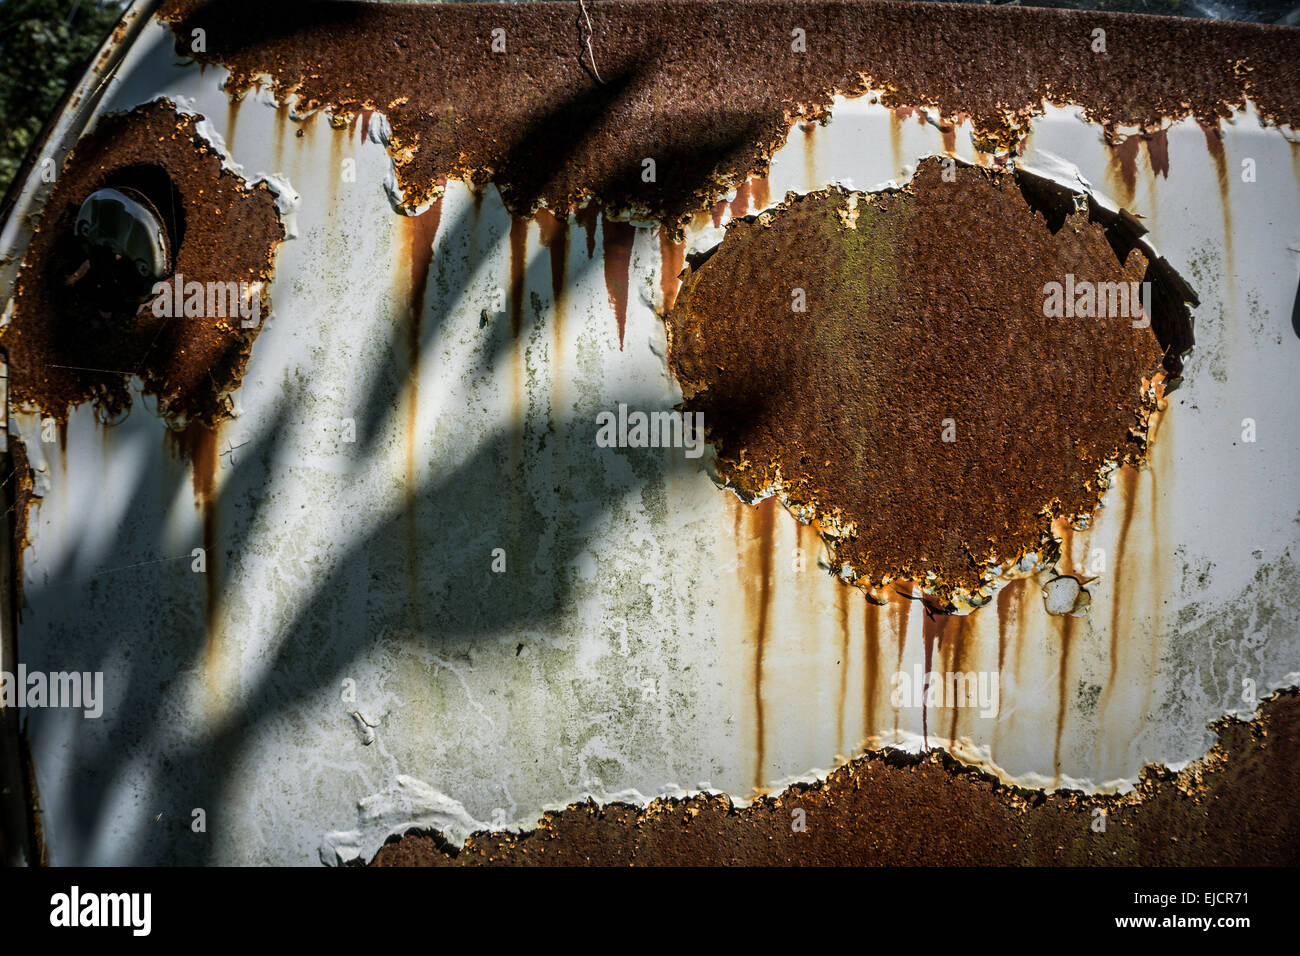 Close-up of the rusty door of an abandoned white car - Stock Image